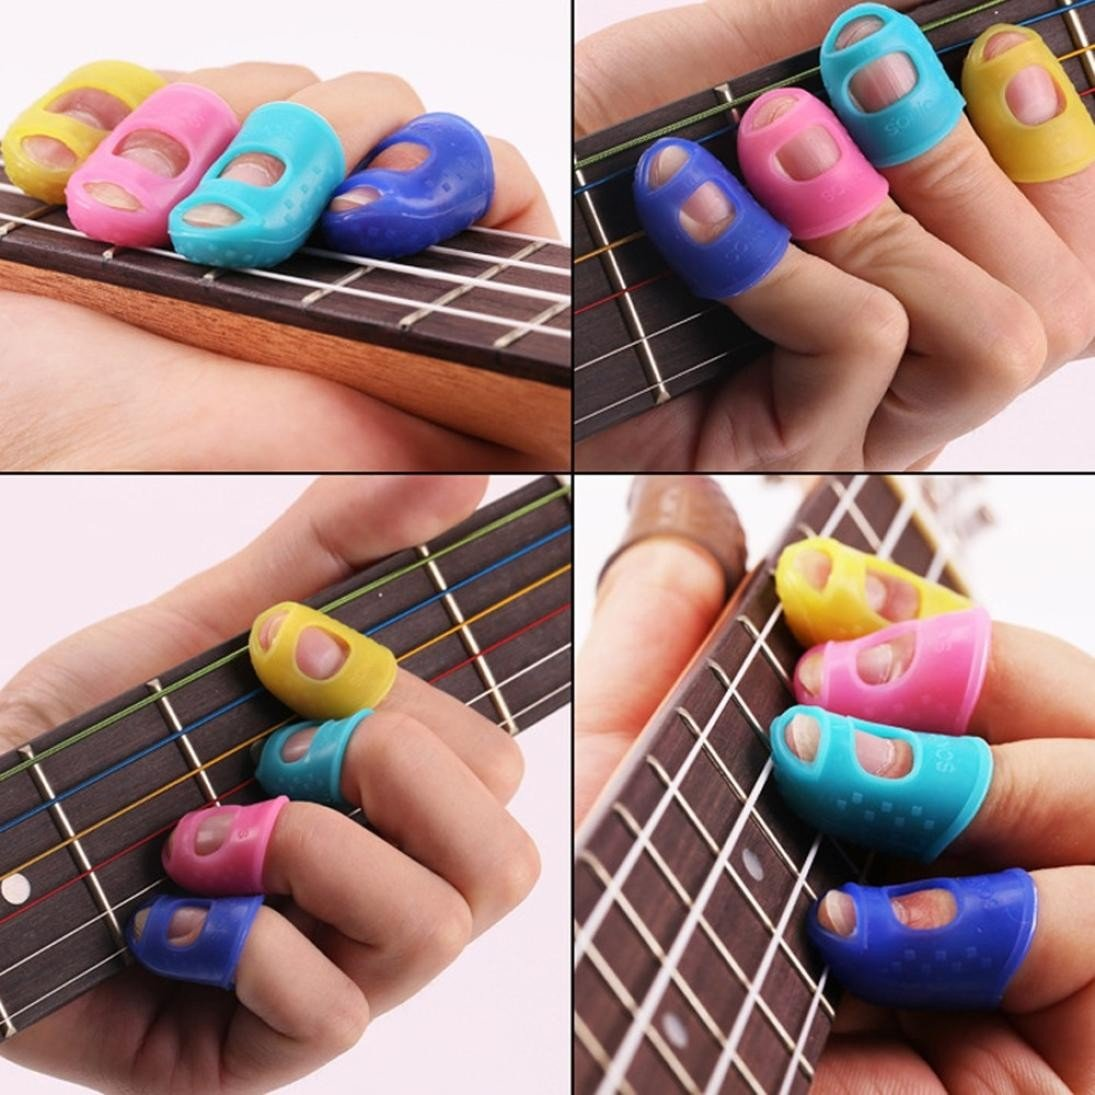 Loneflash 4PCS Guitar Finger Protectors,Silicone Guitar Fingertip Protectors Finger Guards For Ukulele Guitar Accessories (Colors At Random) (L)